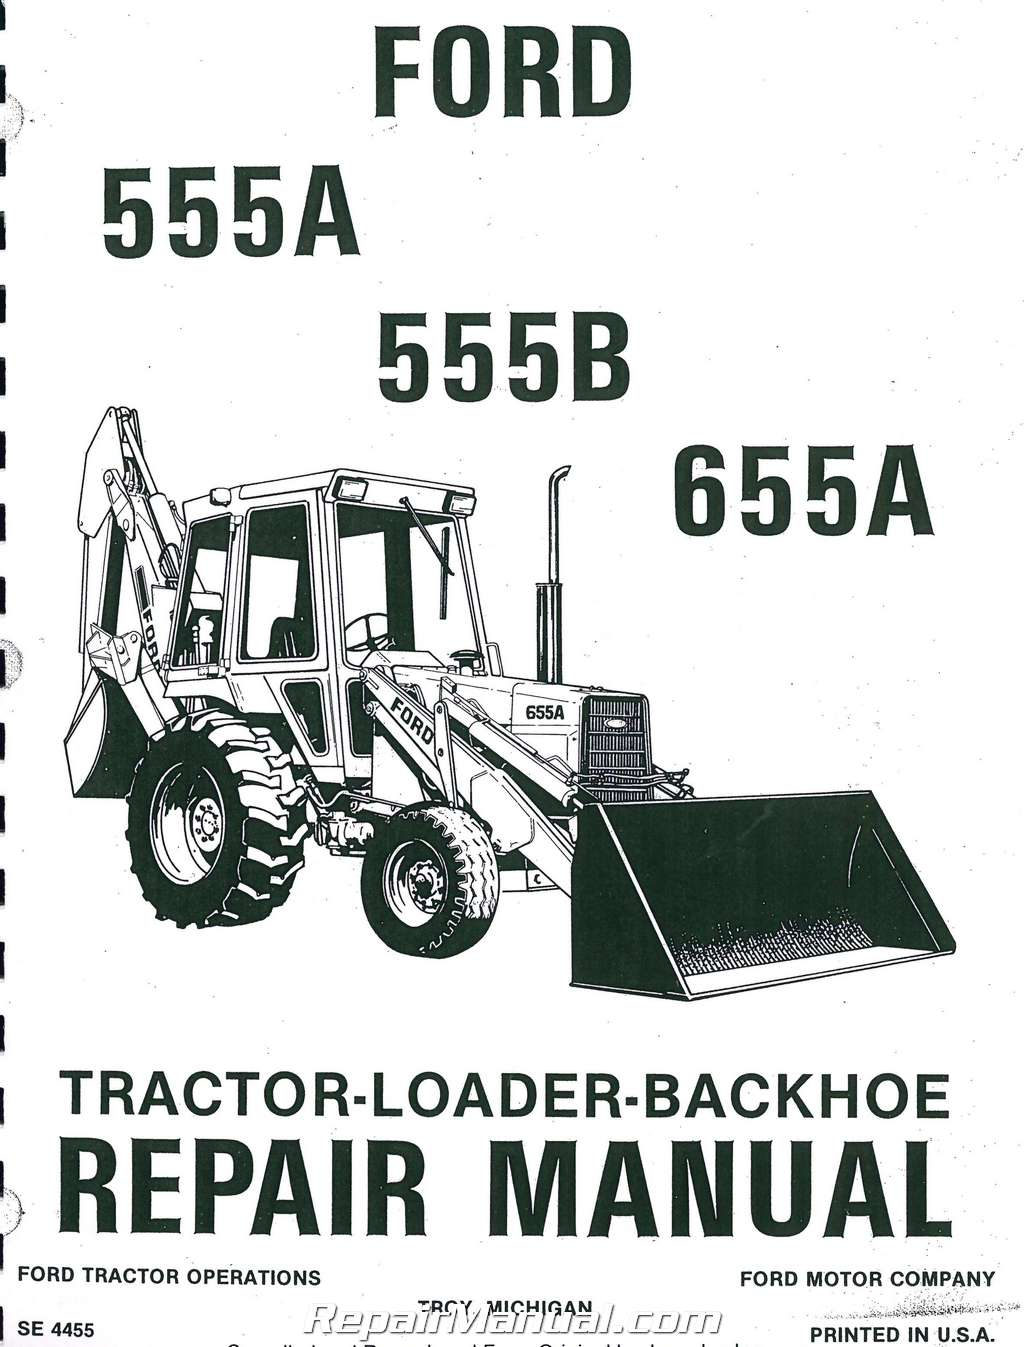 ford 555a 555b 655a tractor loader backhoe